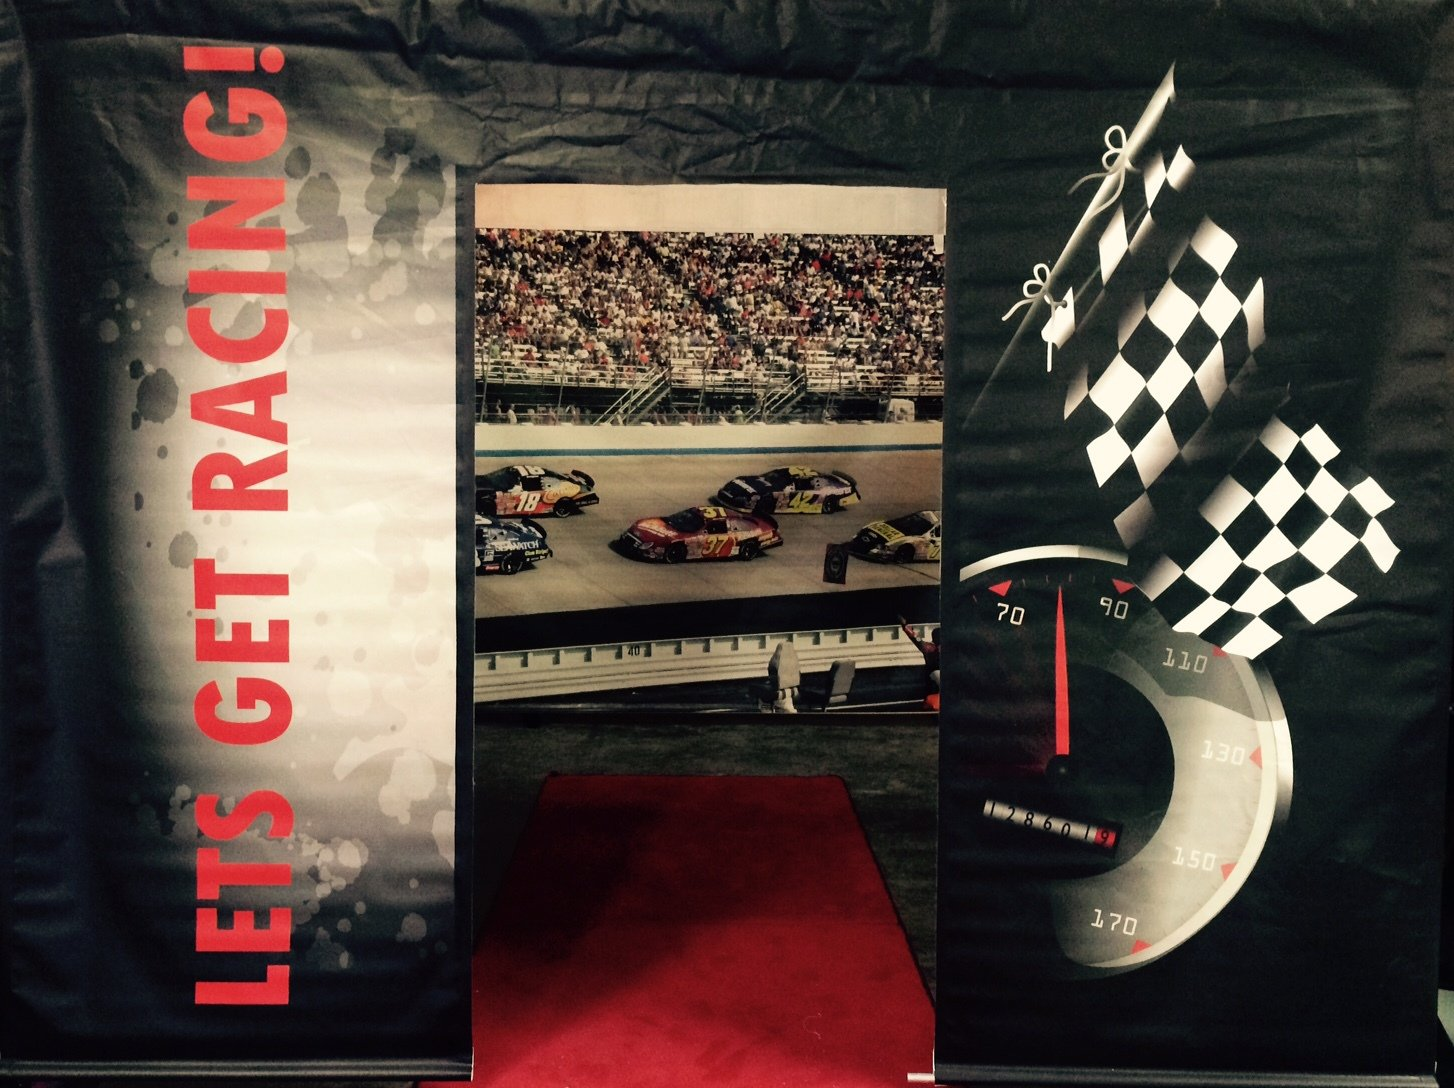 Entrance Race car 3m x 2.3m can be mounted with other race backdrops to create a room $60 incl frame& gst